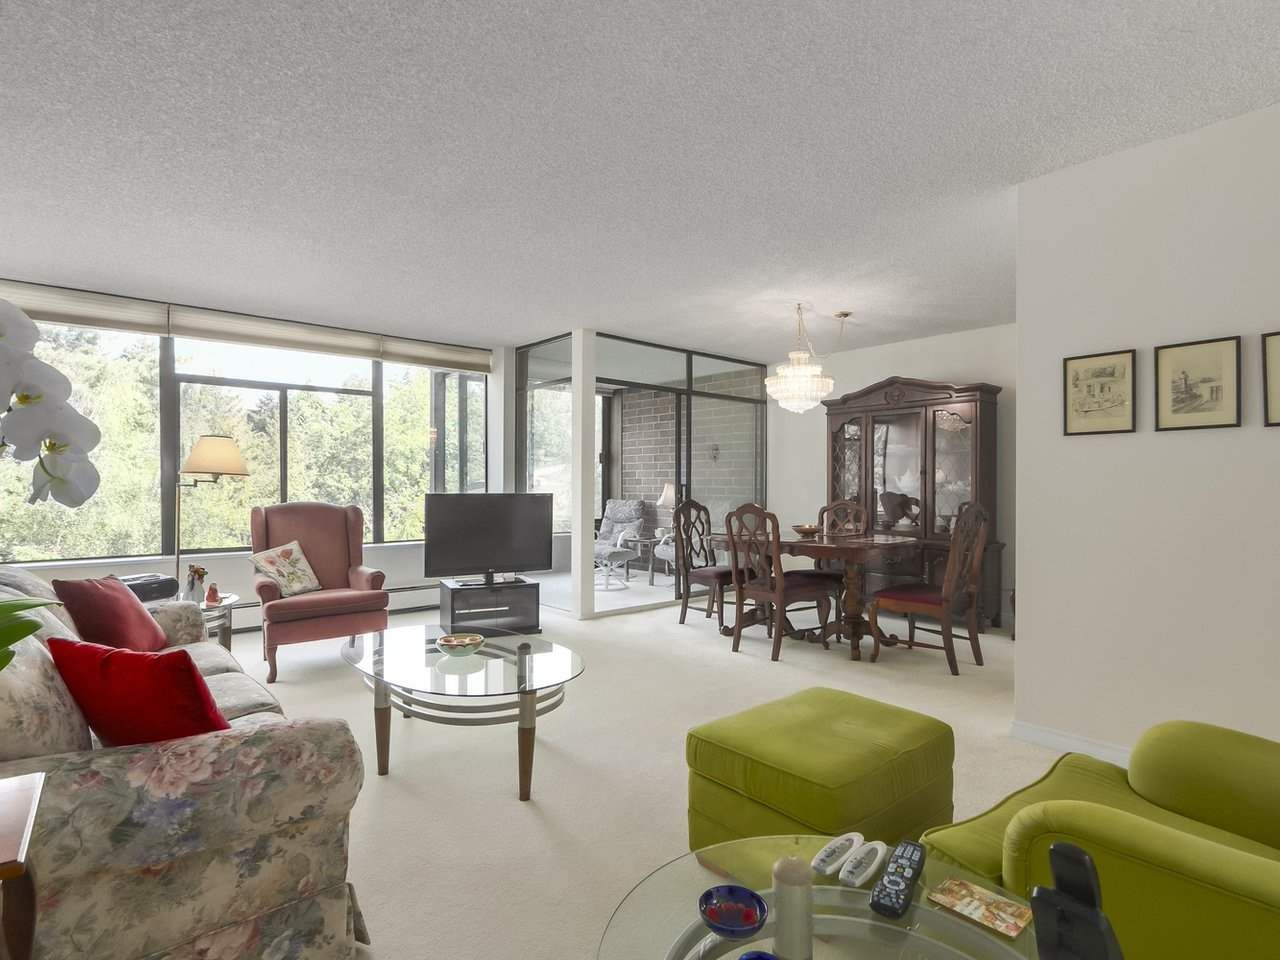 """Main Photo: 310 2101 MCMULLEN Avenue in Vancouver: Quilchena Condo for sale in """"Arbutus Village"""" (Vancouver West)  : MLS®# R2478885"""